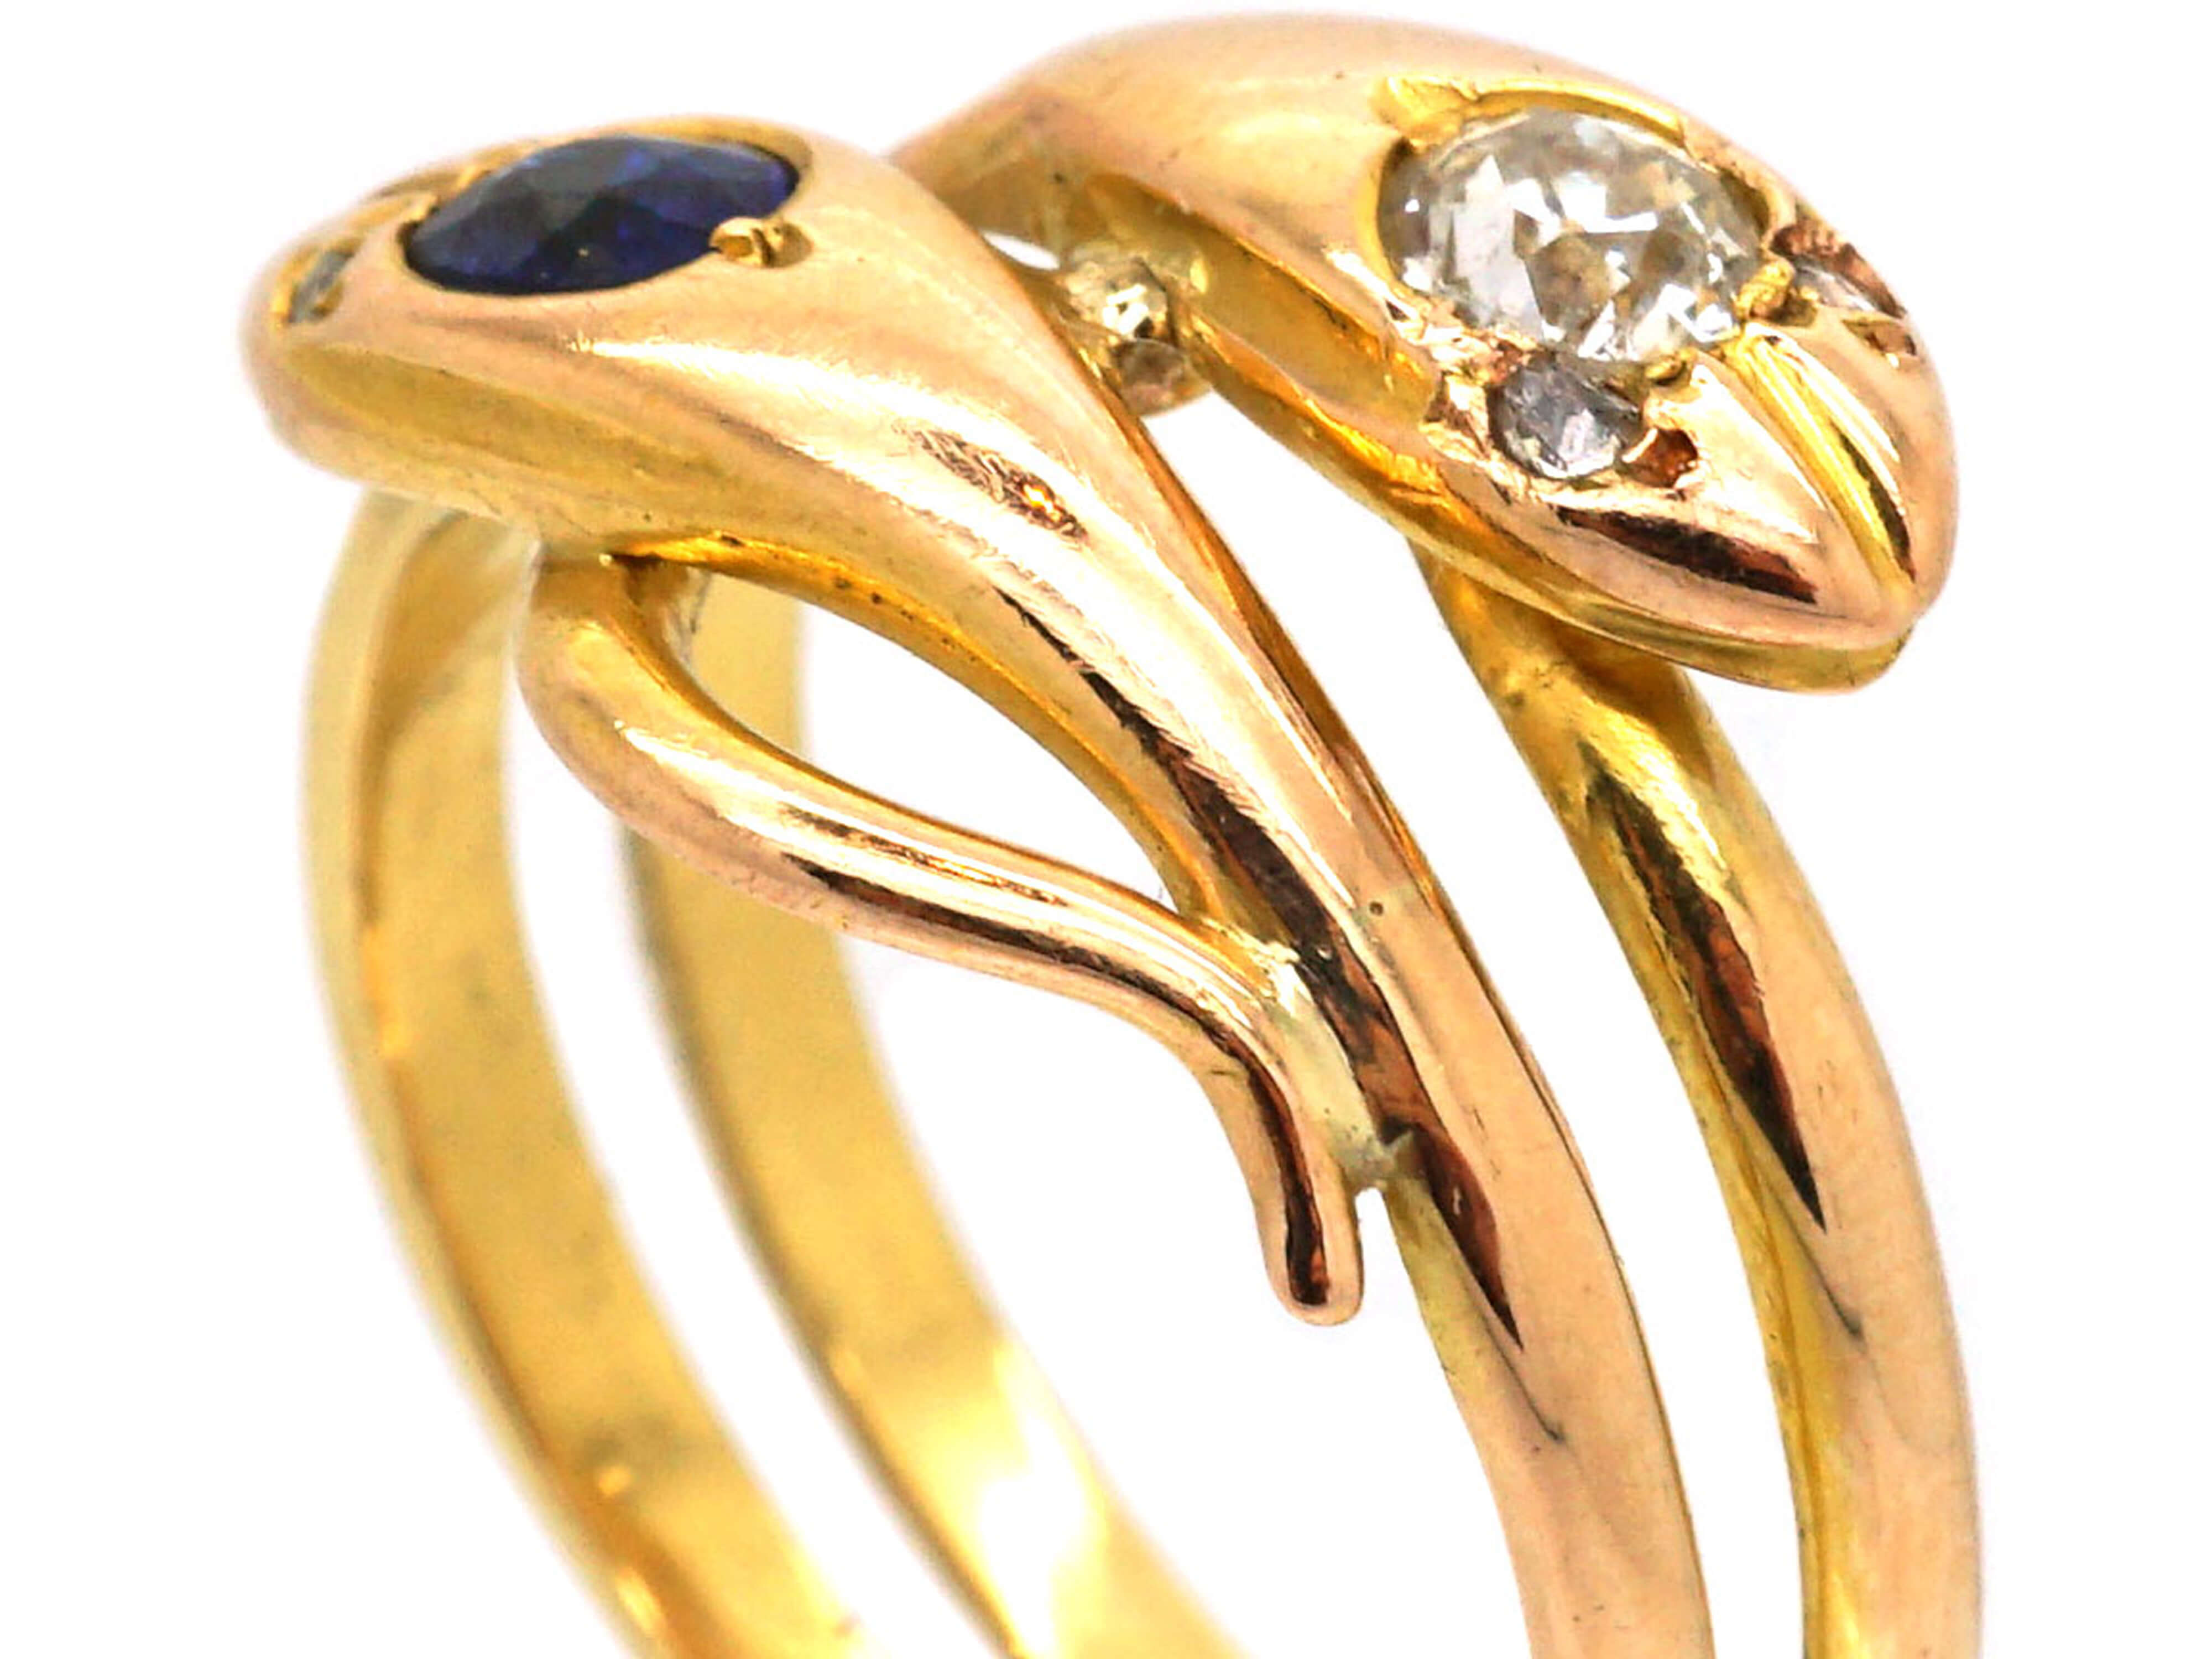 Edwardian 18ct Gold Double Snake Ring set with a Sapphire & a Diamond